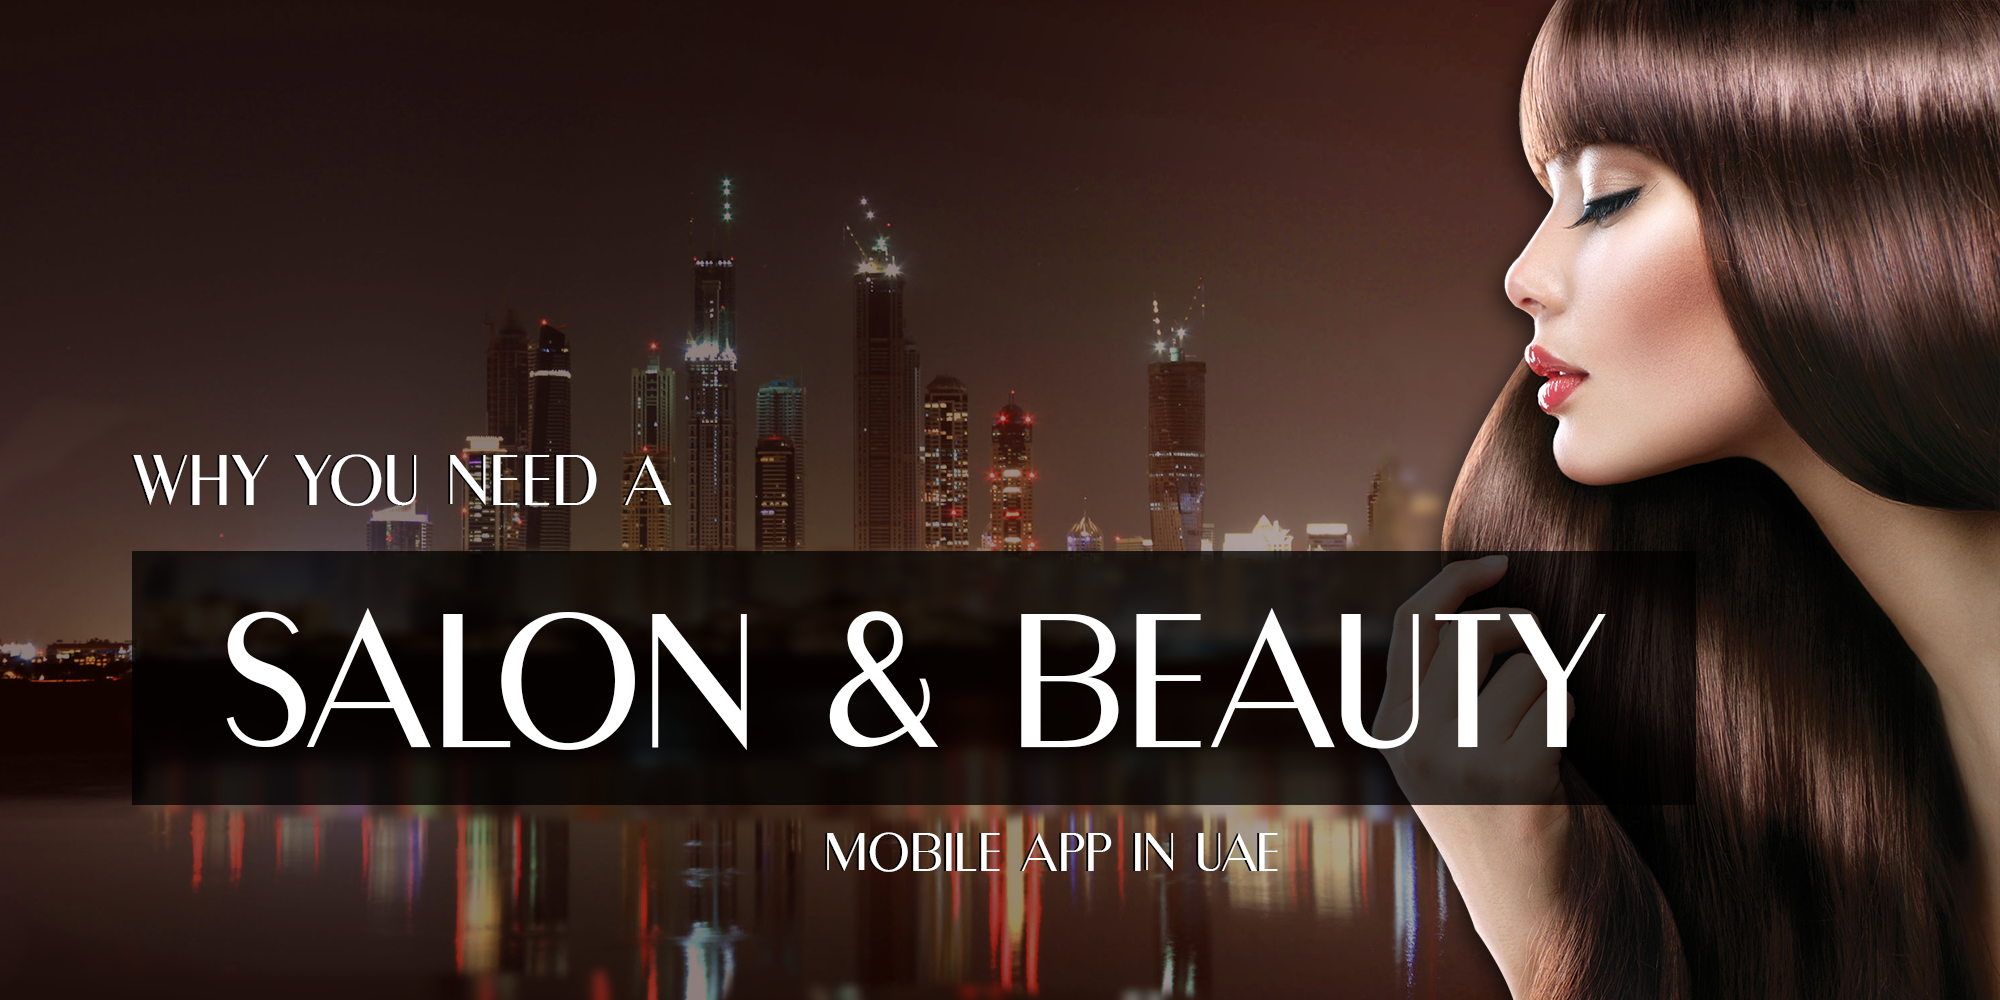 Why you need a salon beauty mobile app in uae for Beauty salon in uae